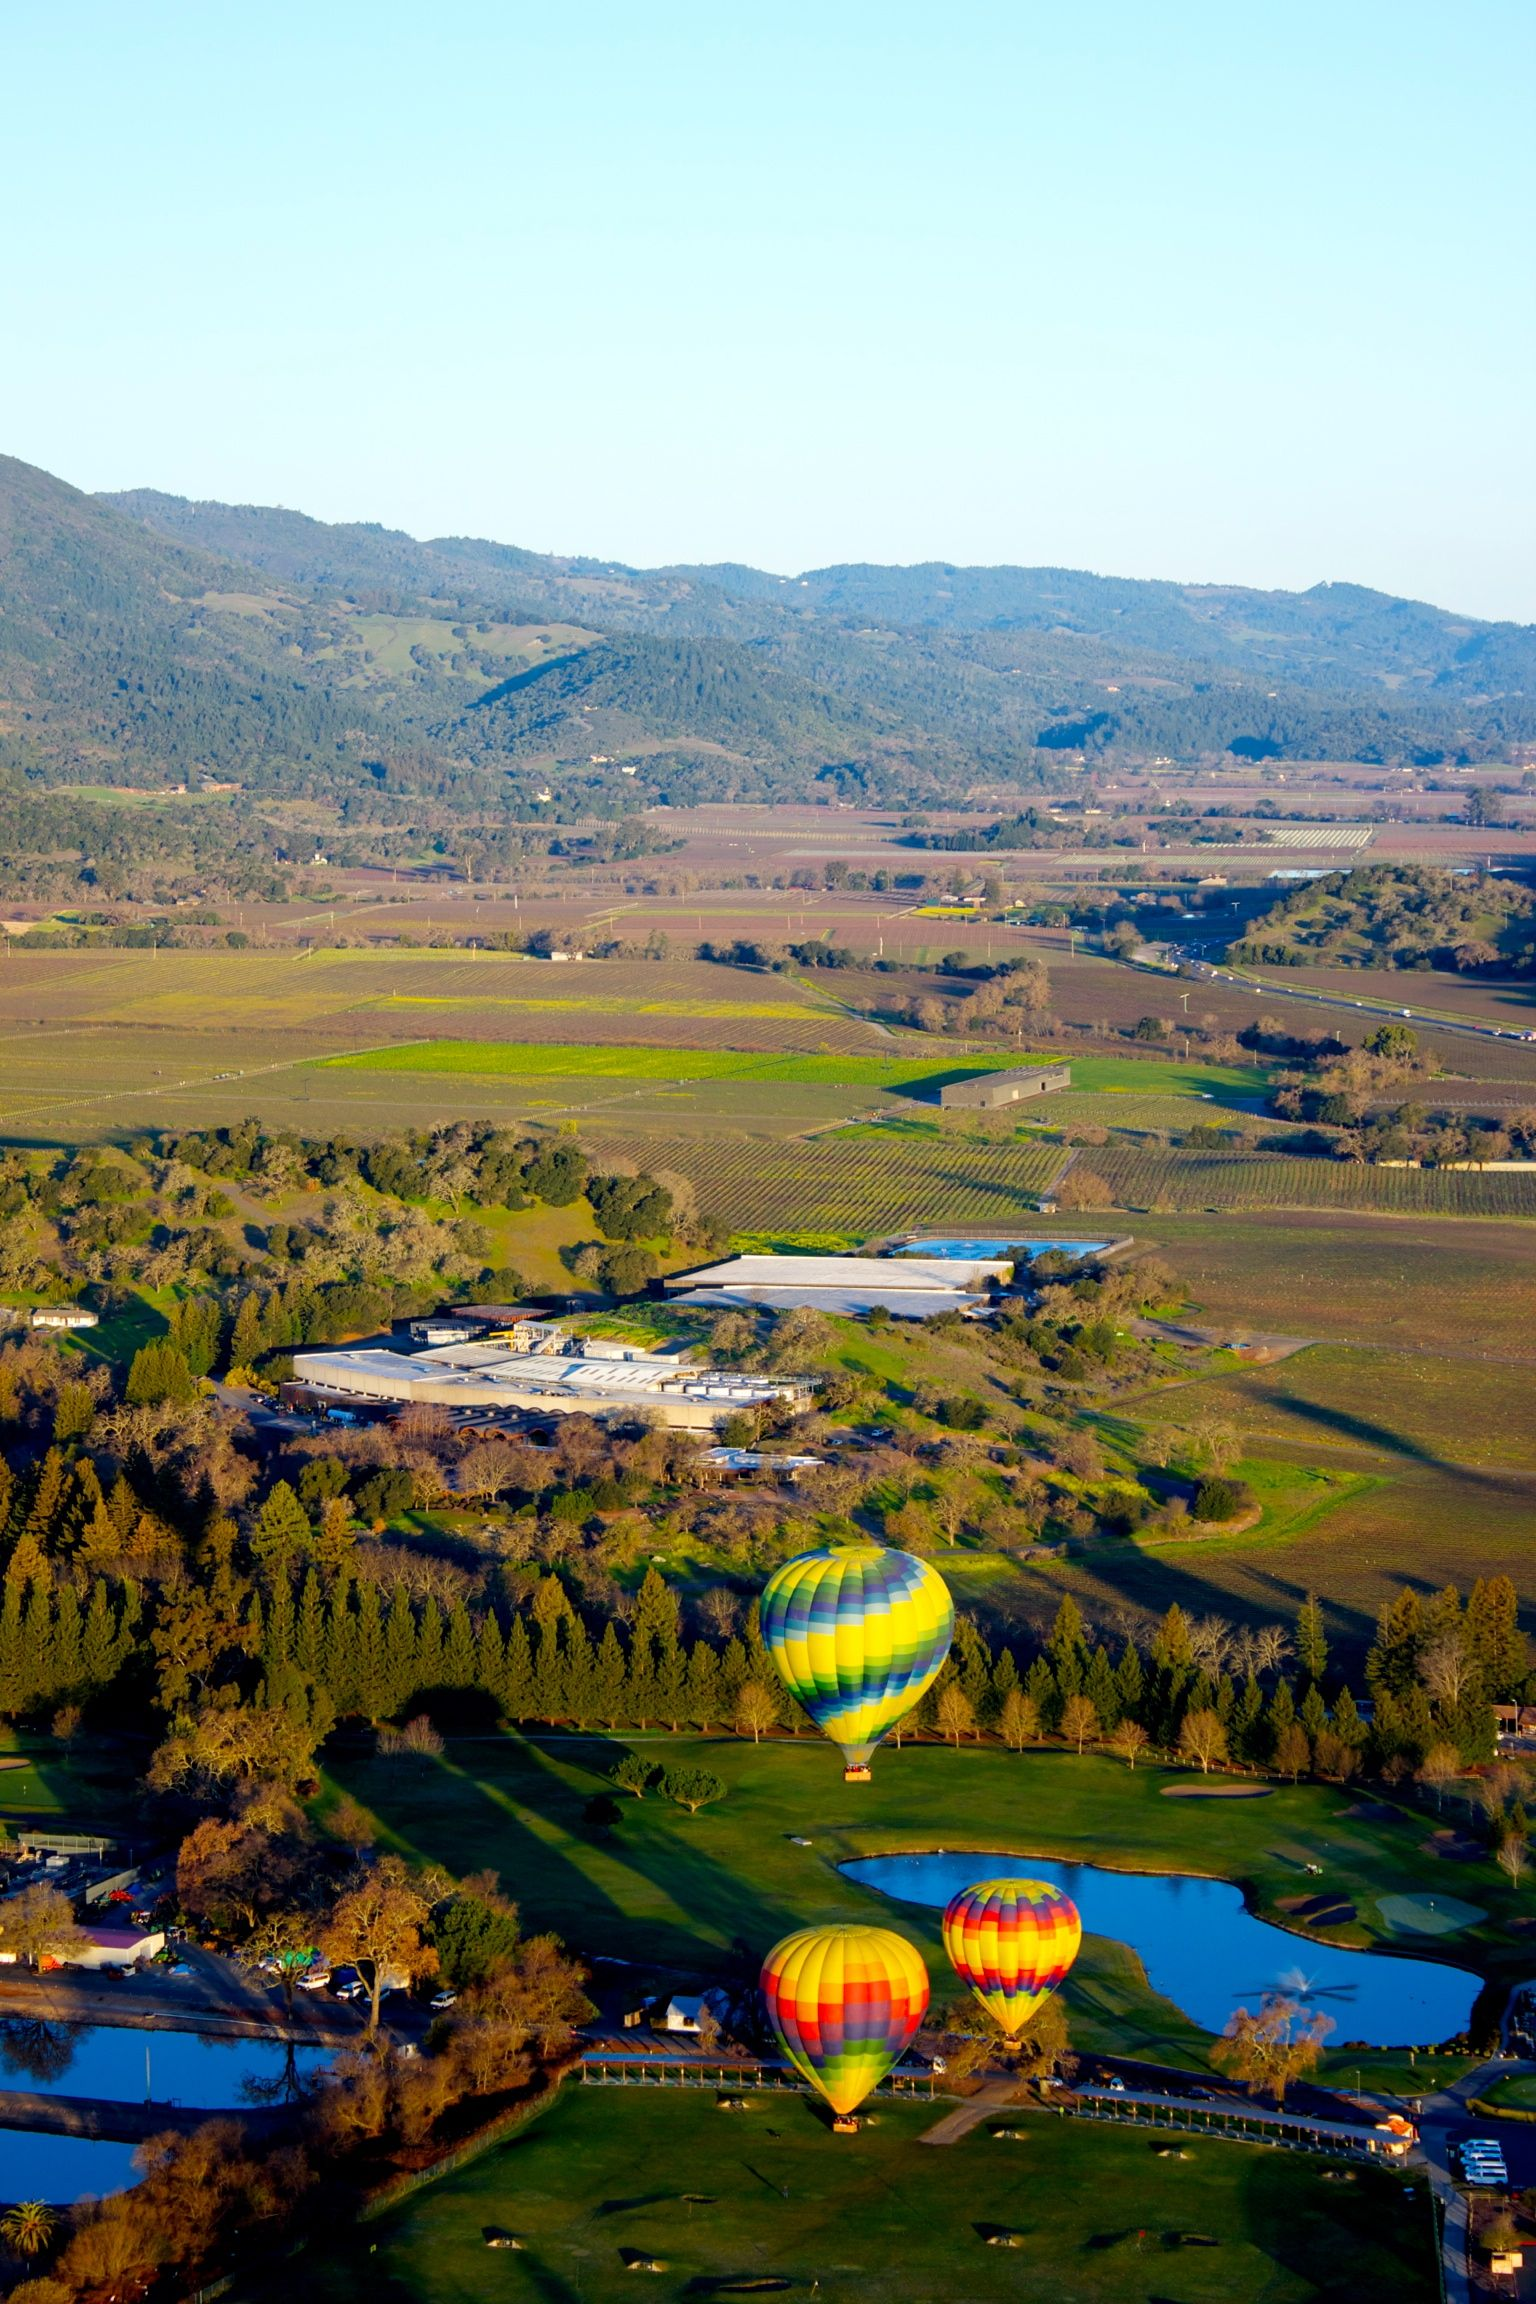 Napa Hot Air Ballon Ride Hot air ballon, Hot air balloon